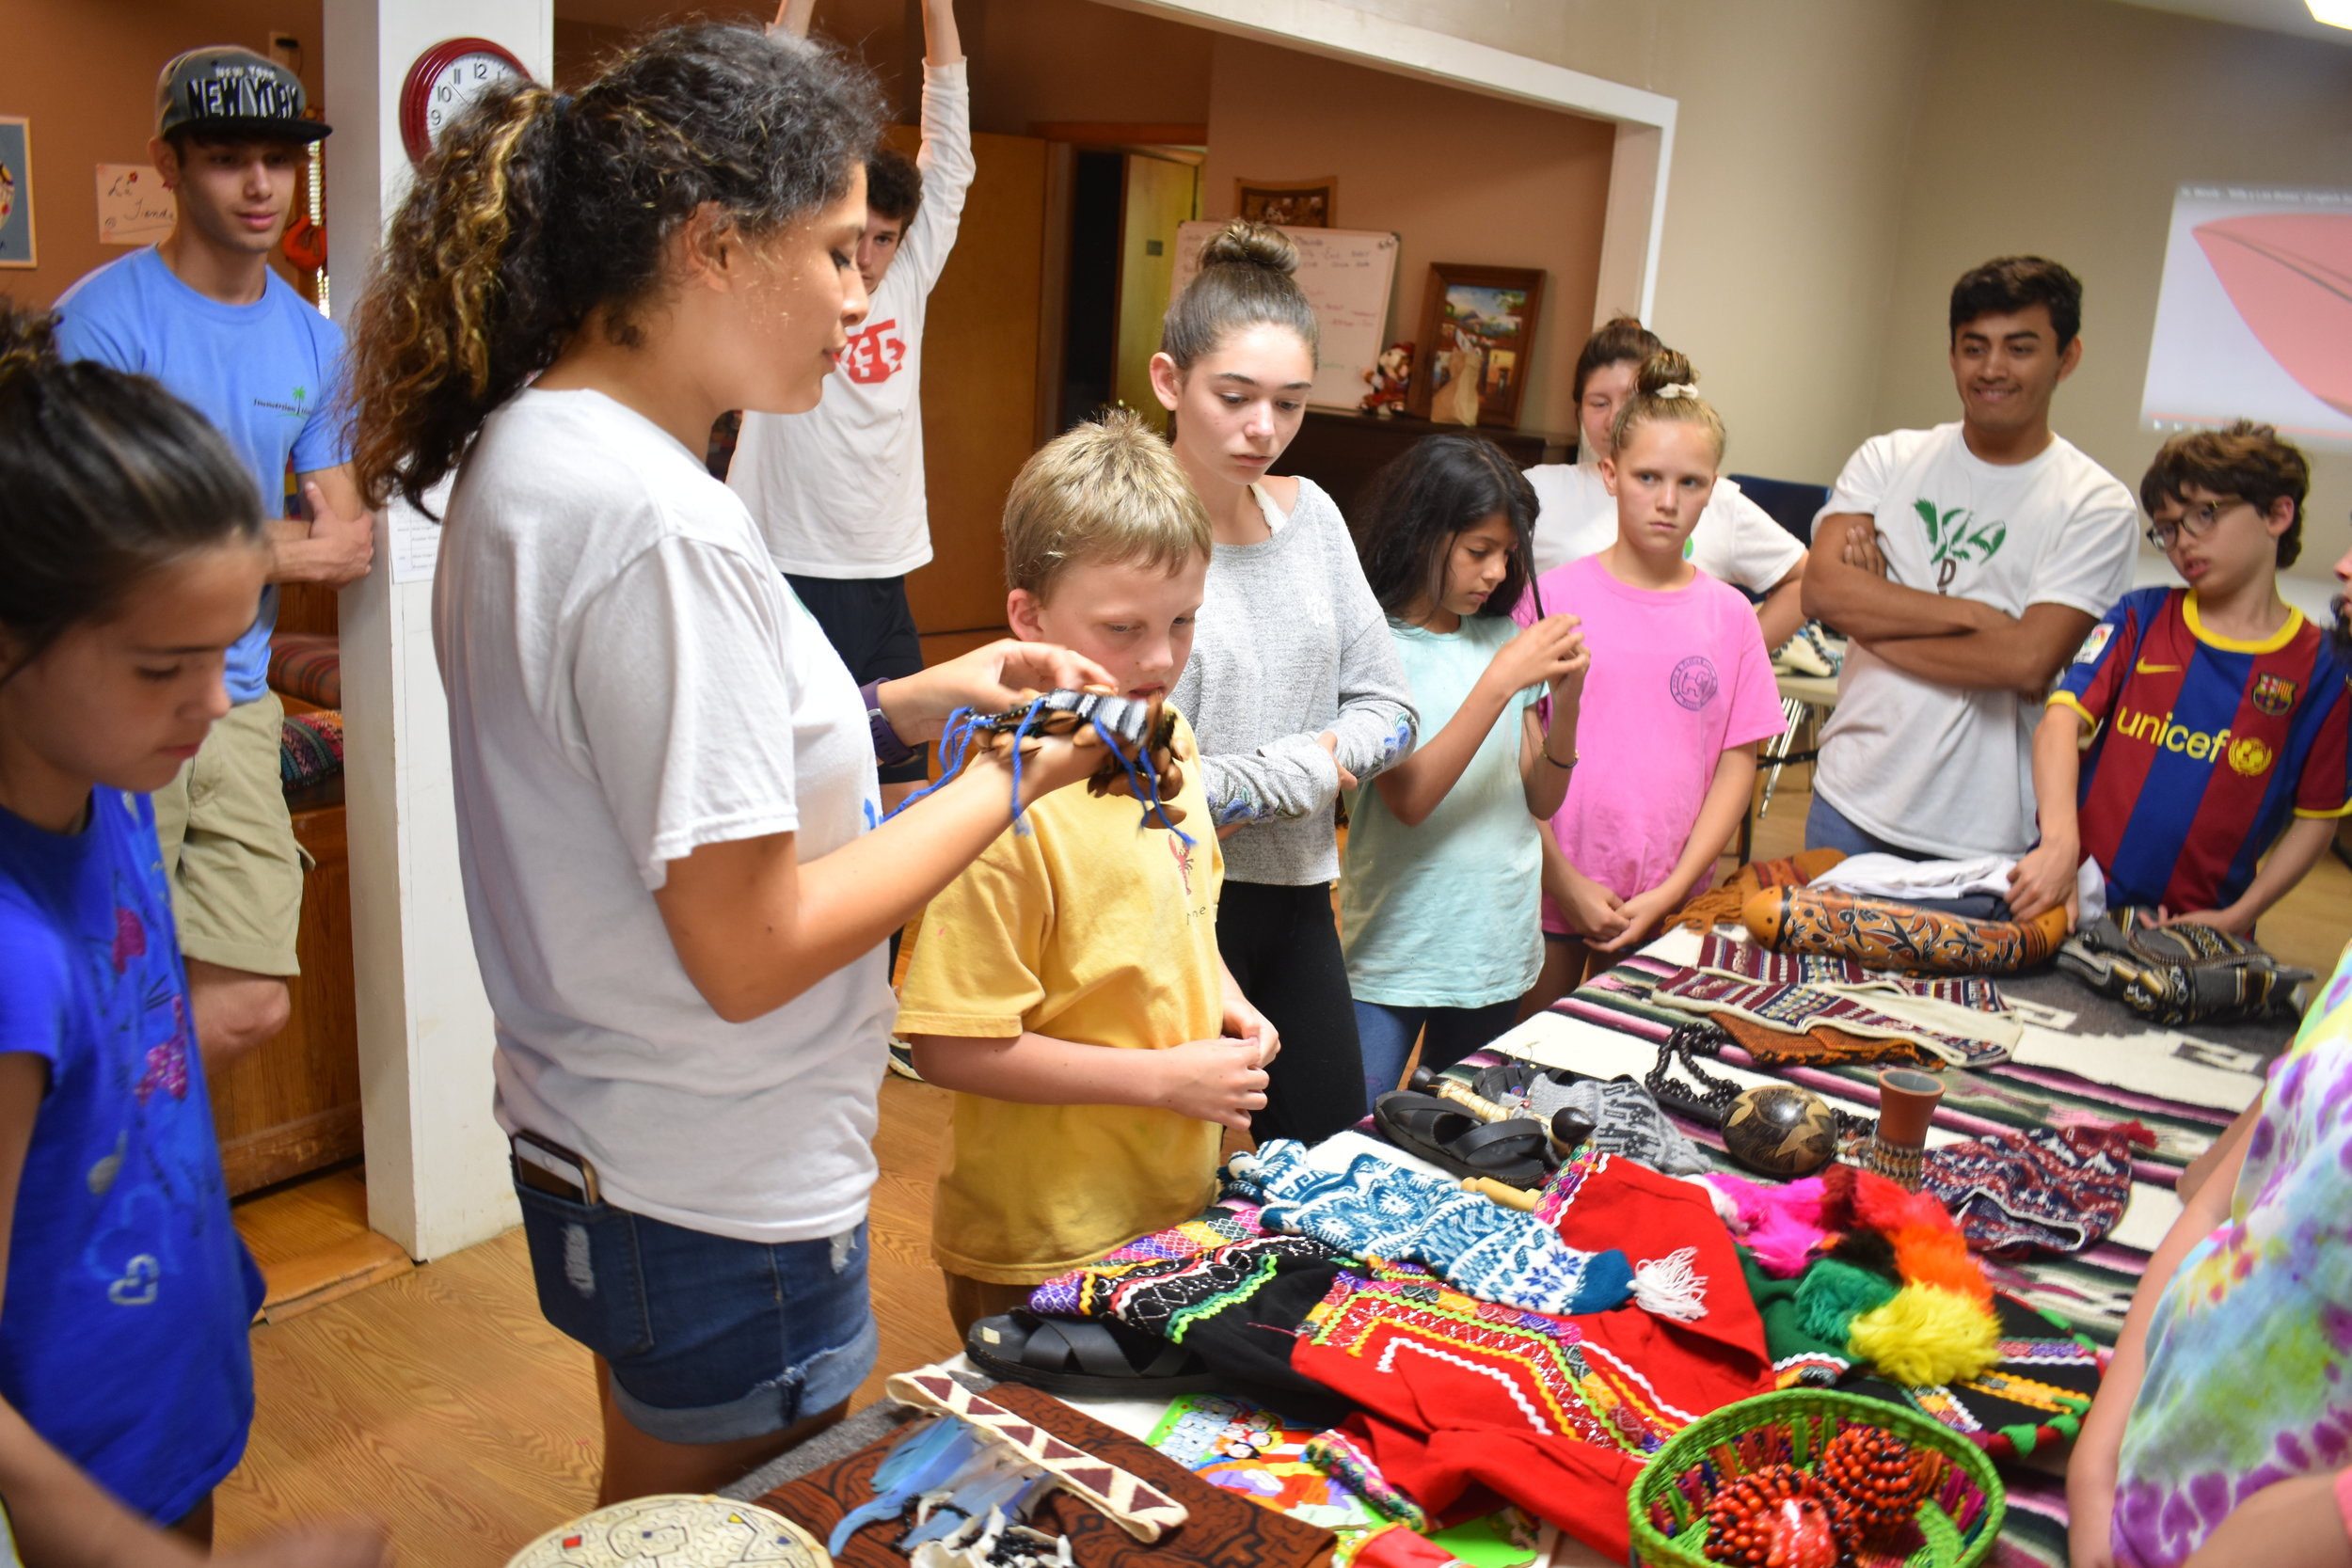 Campers use Camp Peso's to buy culturally relevant gifts, toys and other items. Camp Pesos are earned for performing certain tasks and actively engaging in conversation.